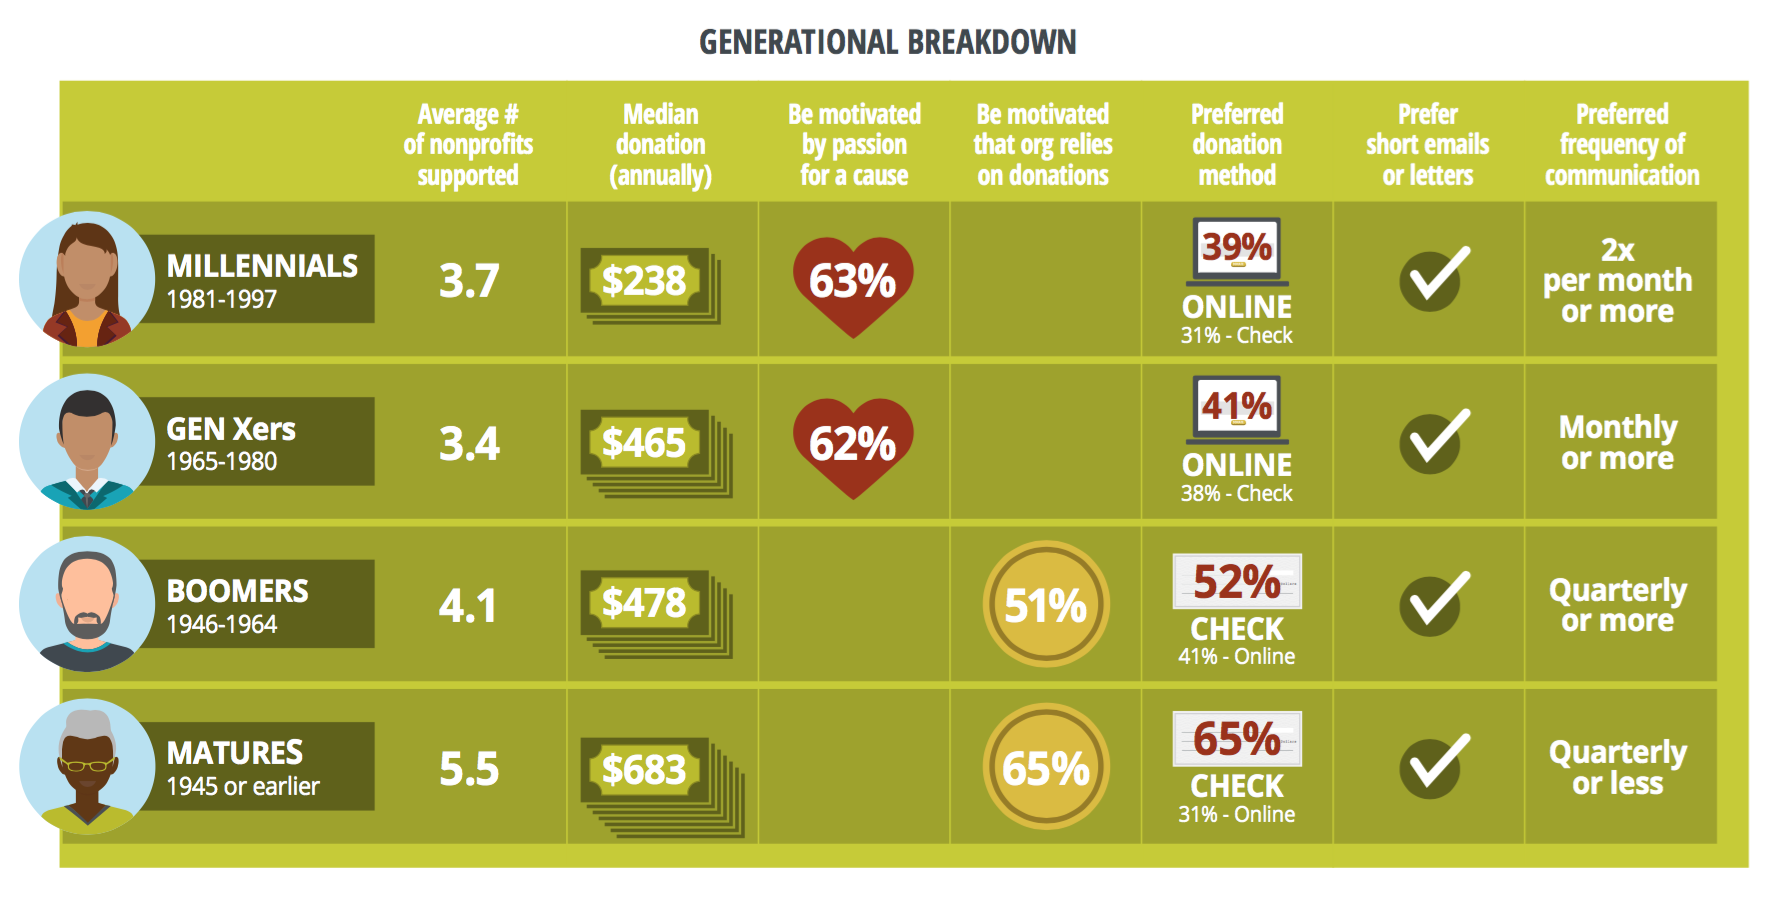 Generational breakdown of how donors support nonprofits